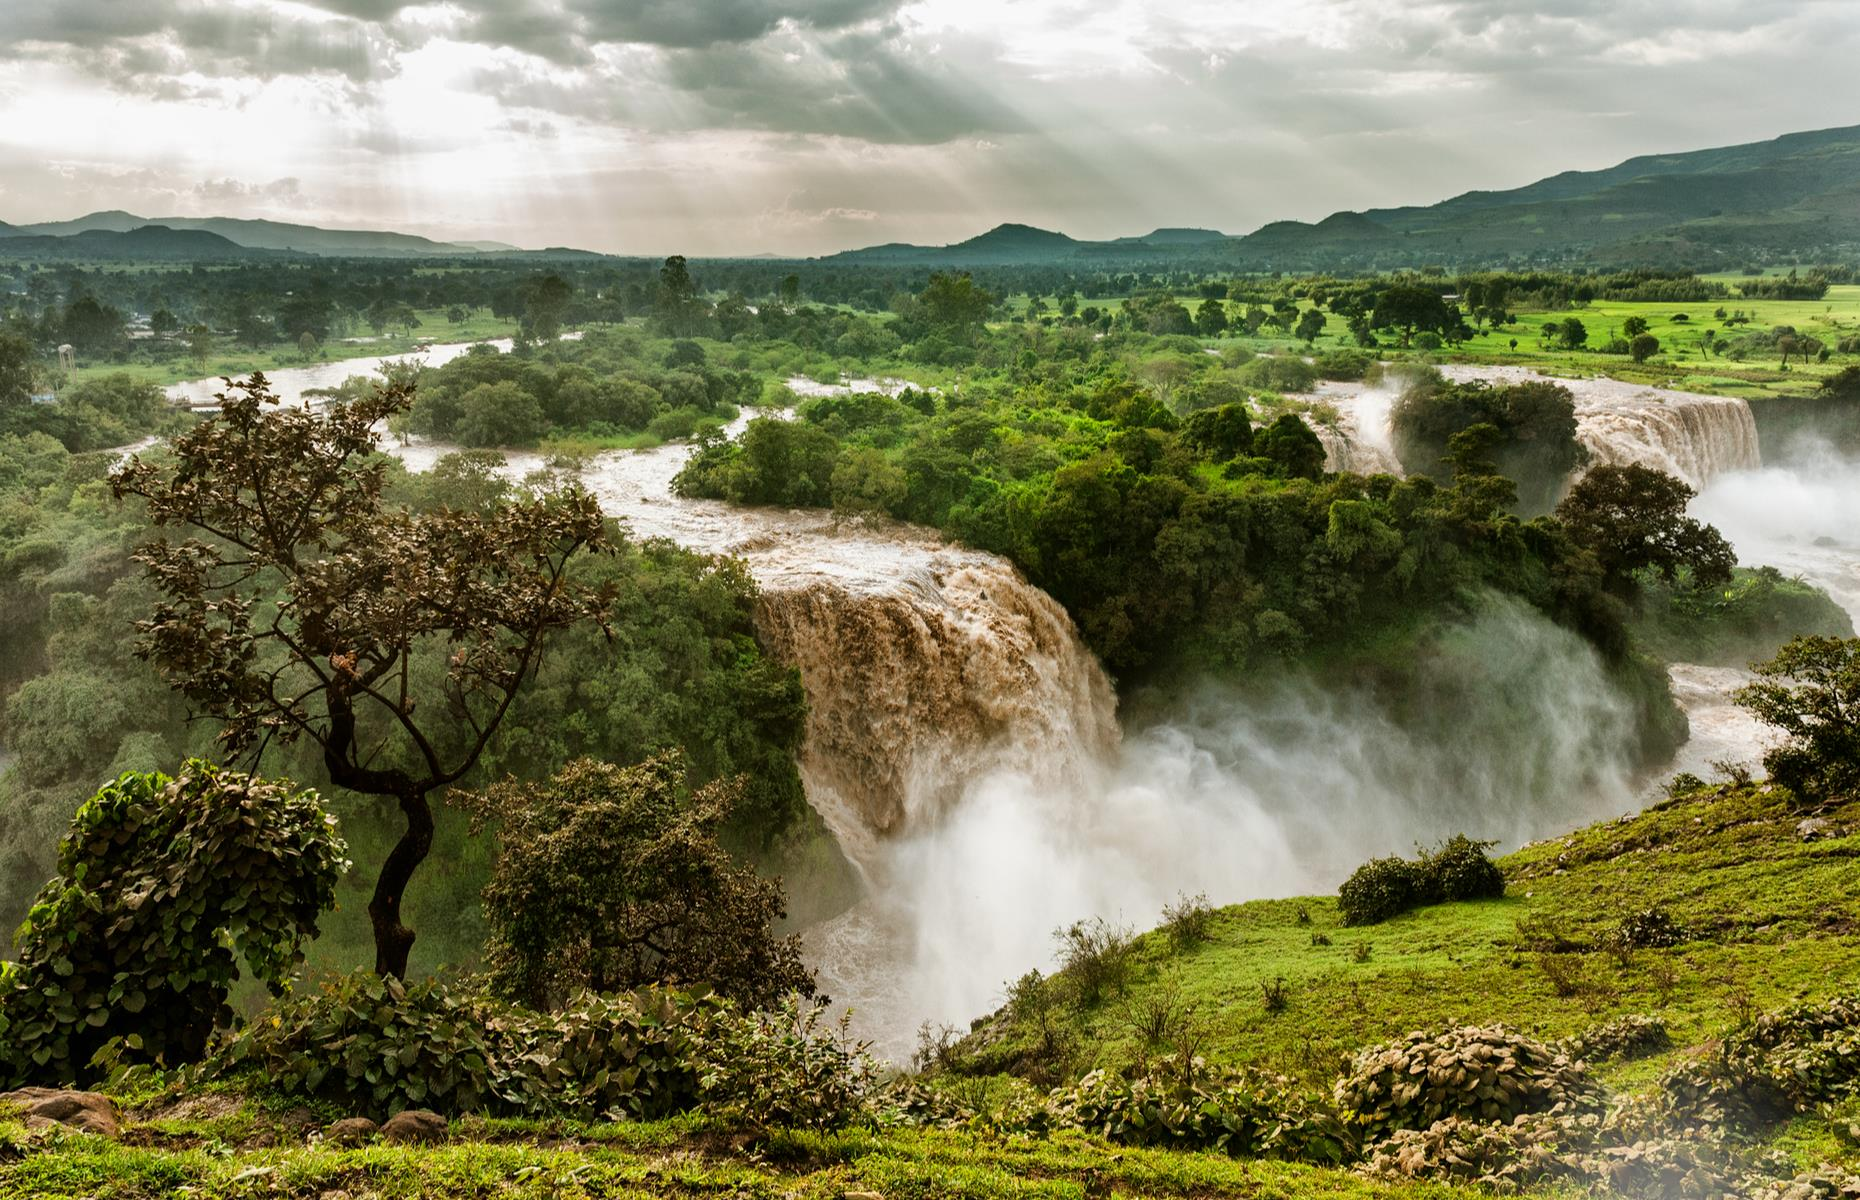 Slide 18 of 31: The mist produced by the Blue Nile Falls in northwestern Ethiopia is so dense, the waterfall's local name is Tis Abay – Amharic for 'great smoke'. Straddling the White and Blue Nile rivers, its biggest drop is around 140 feet (43m) and its widest point is 1,312 feet (400m), creating a dramatic sight amid lush rainforest.